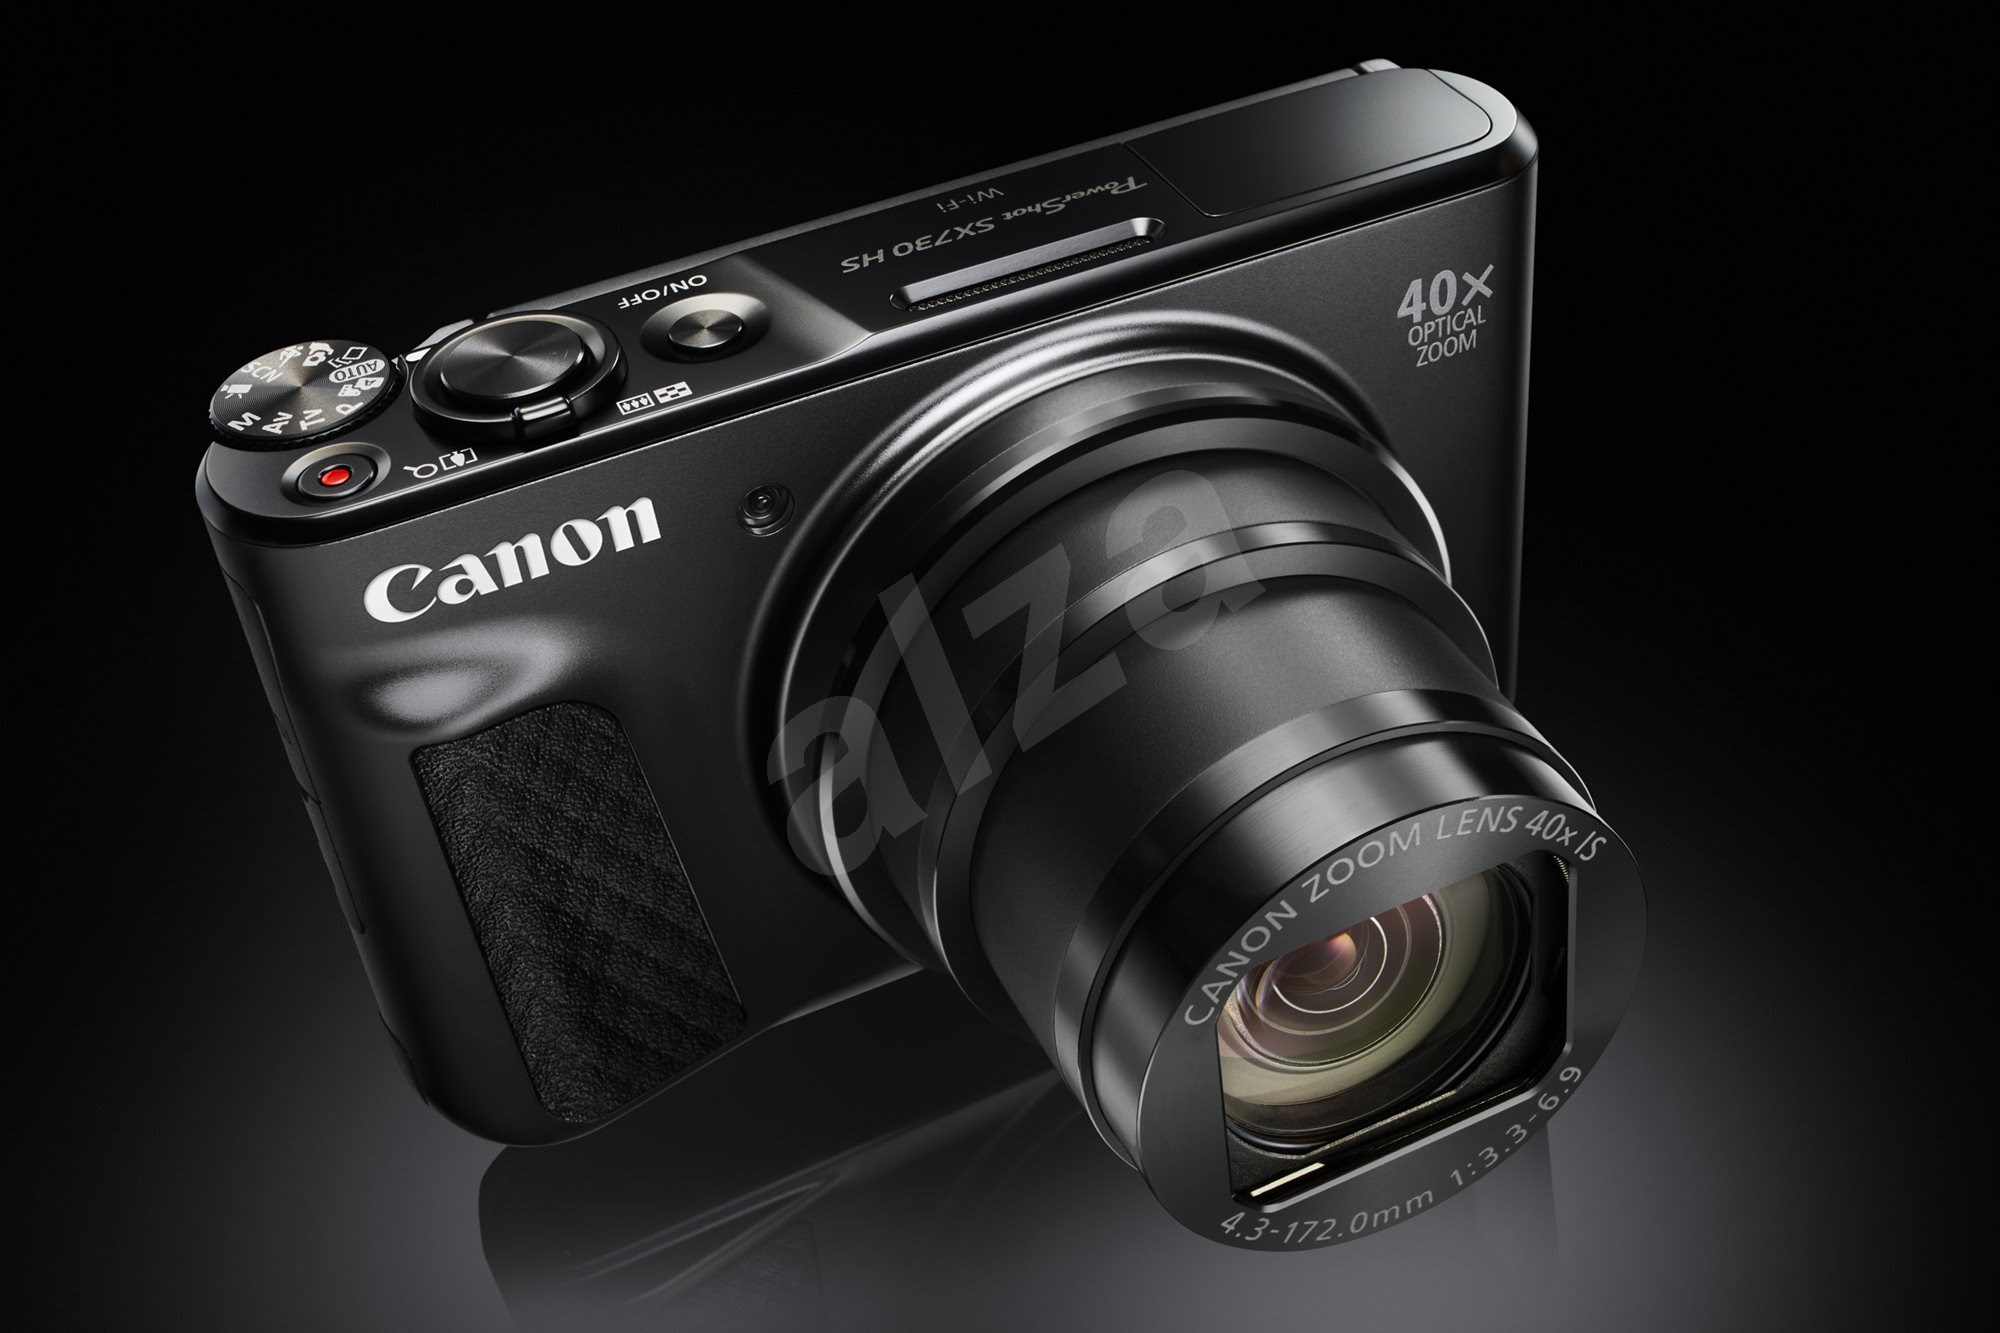 canon powershot sx730 hs black digital camera. Black Bedroom Furniture Sets. Home Design Ideas